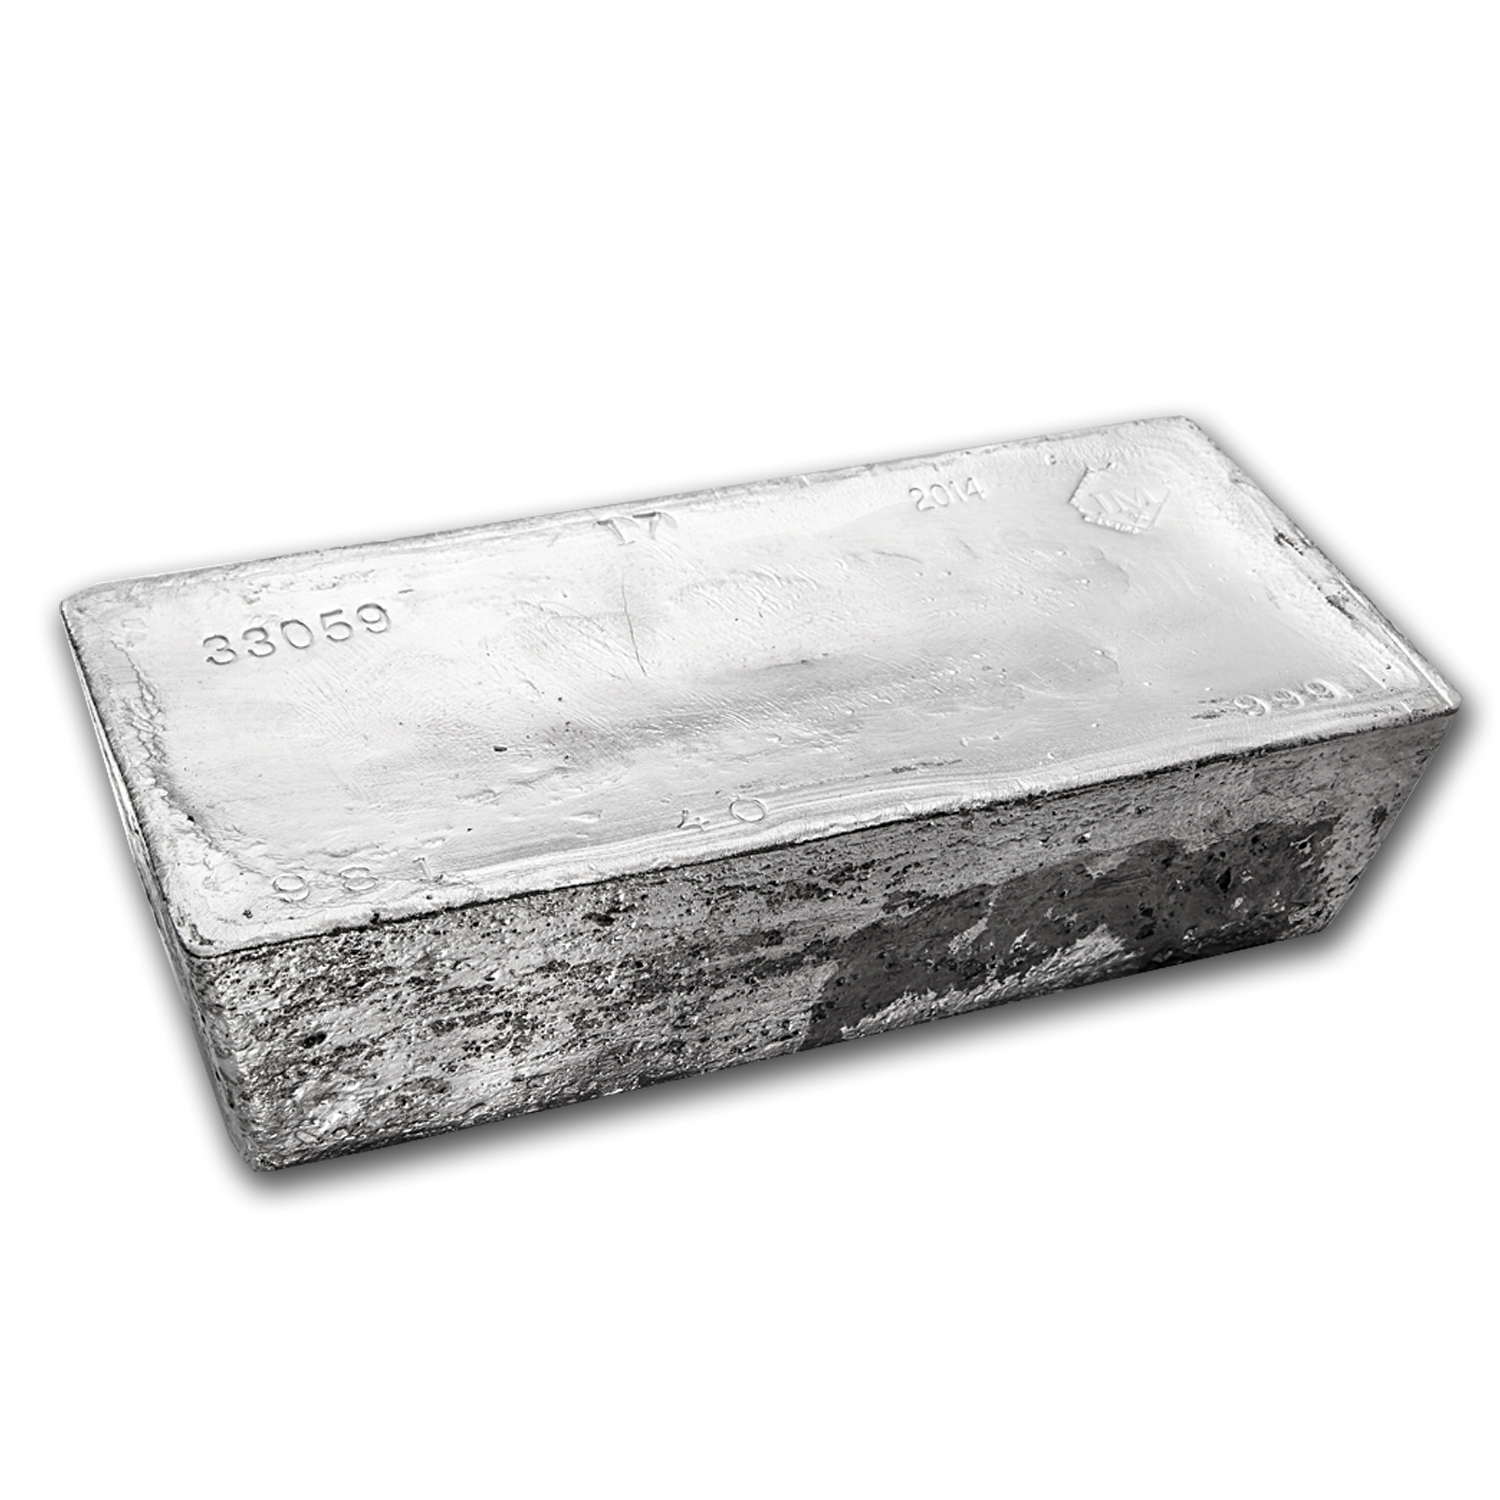 980.60 oz Silver Bars - Johnson Matthey